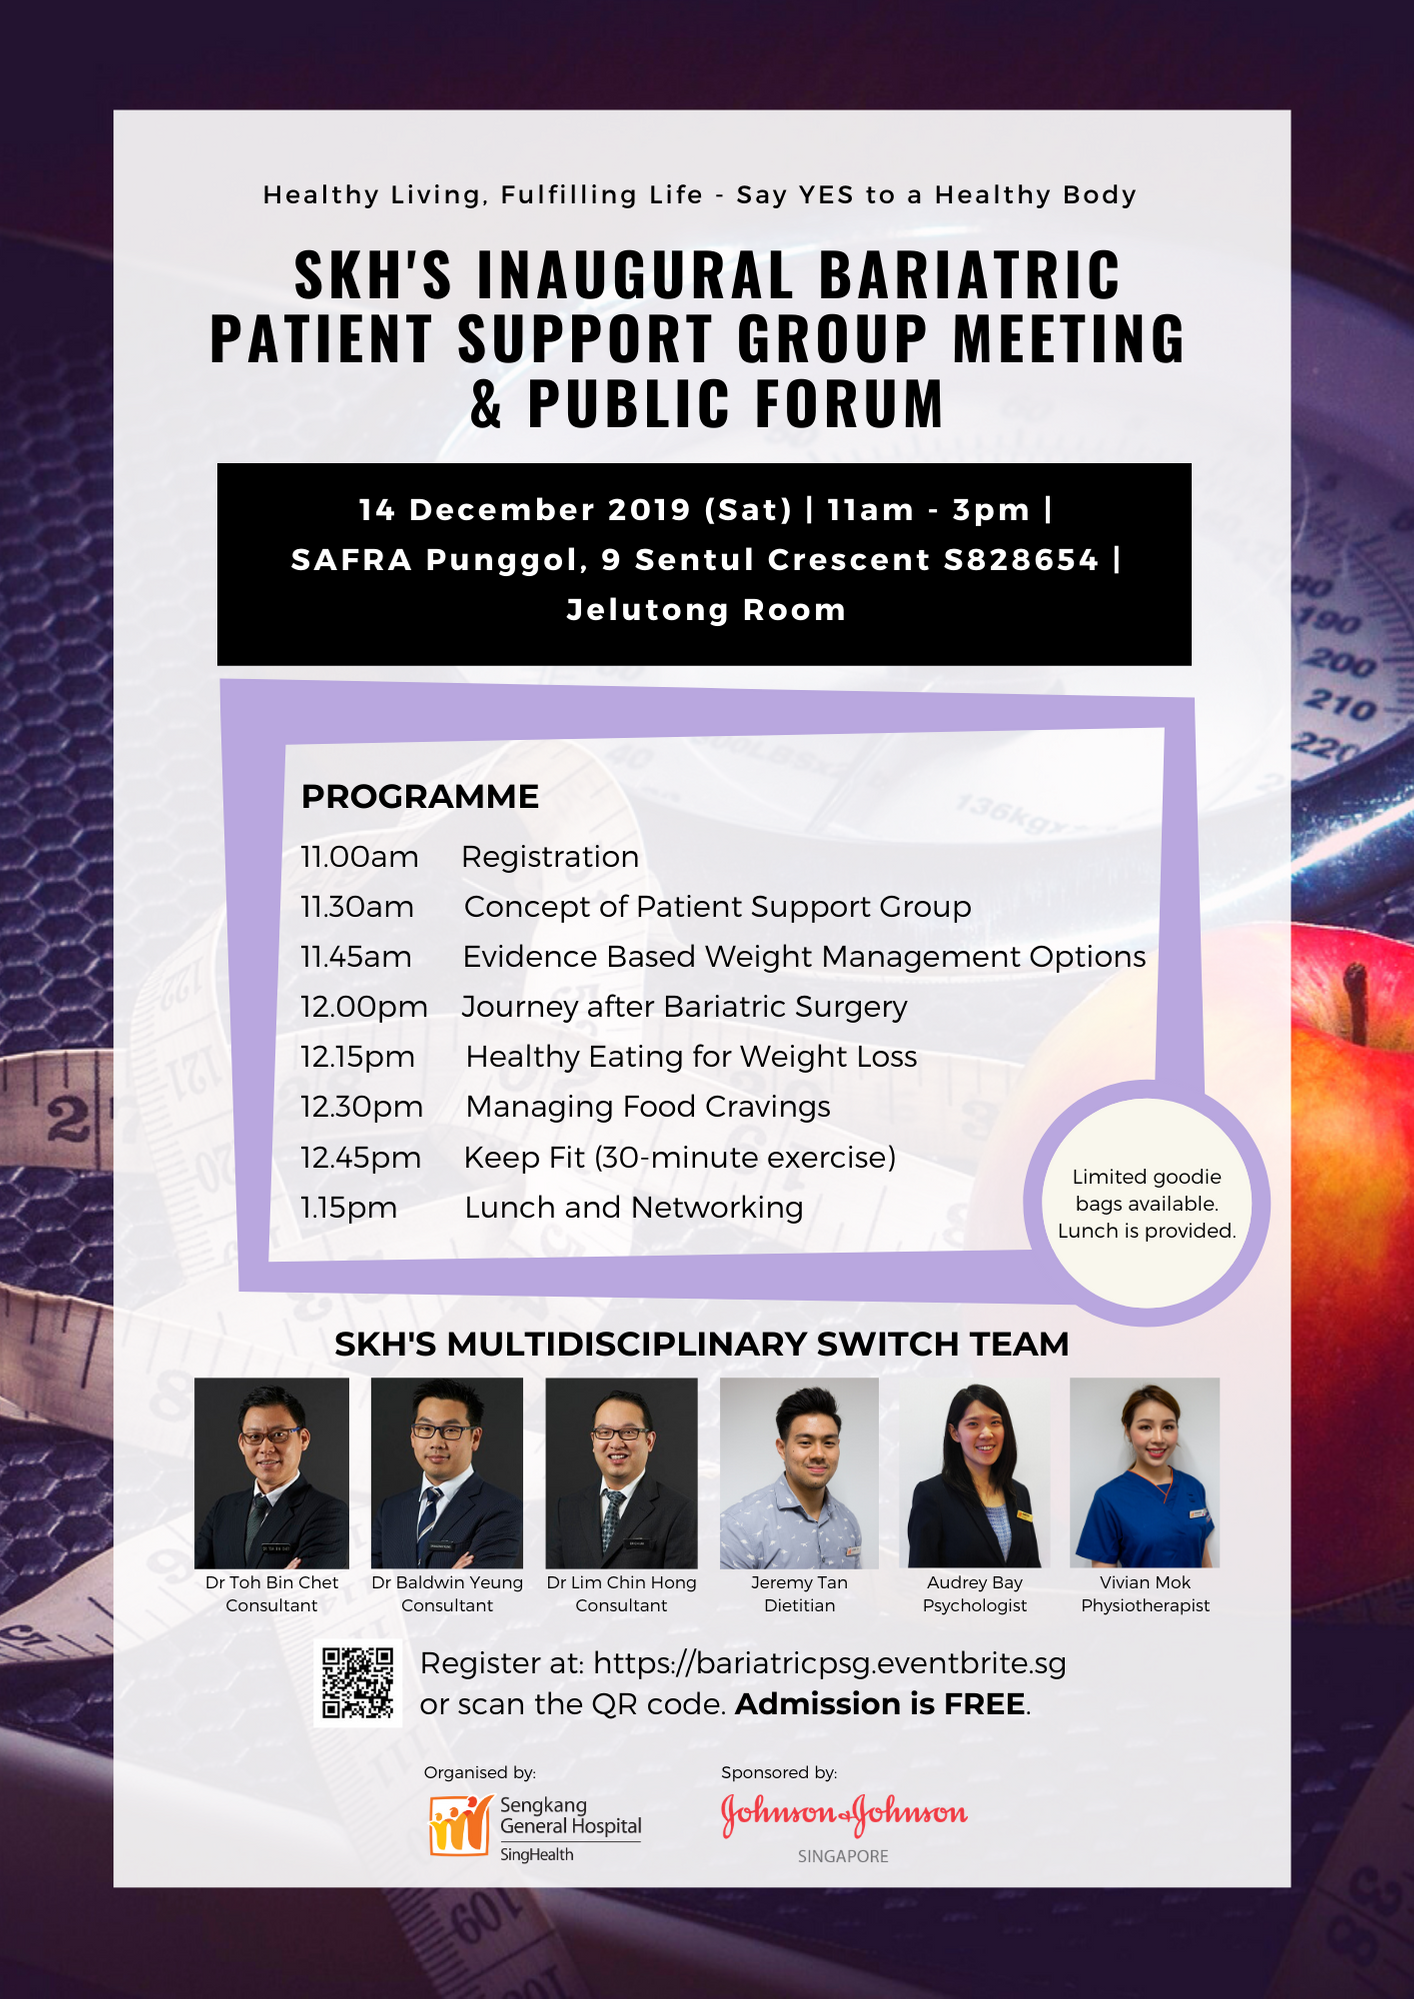 SKH Bariatric Patient Support Group Meeting and Public Forum